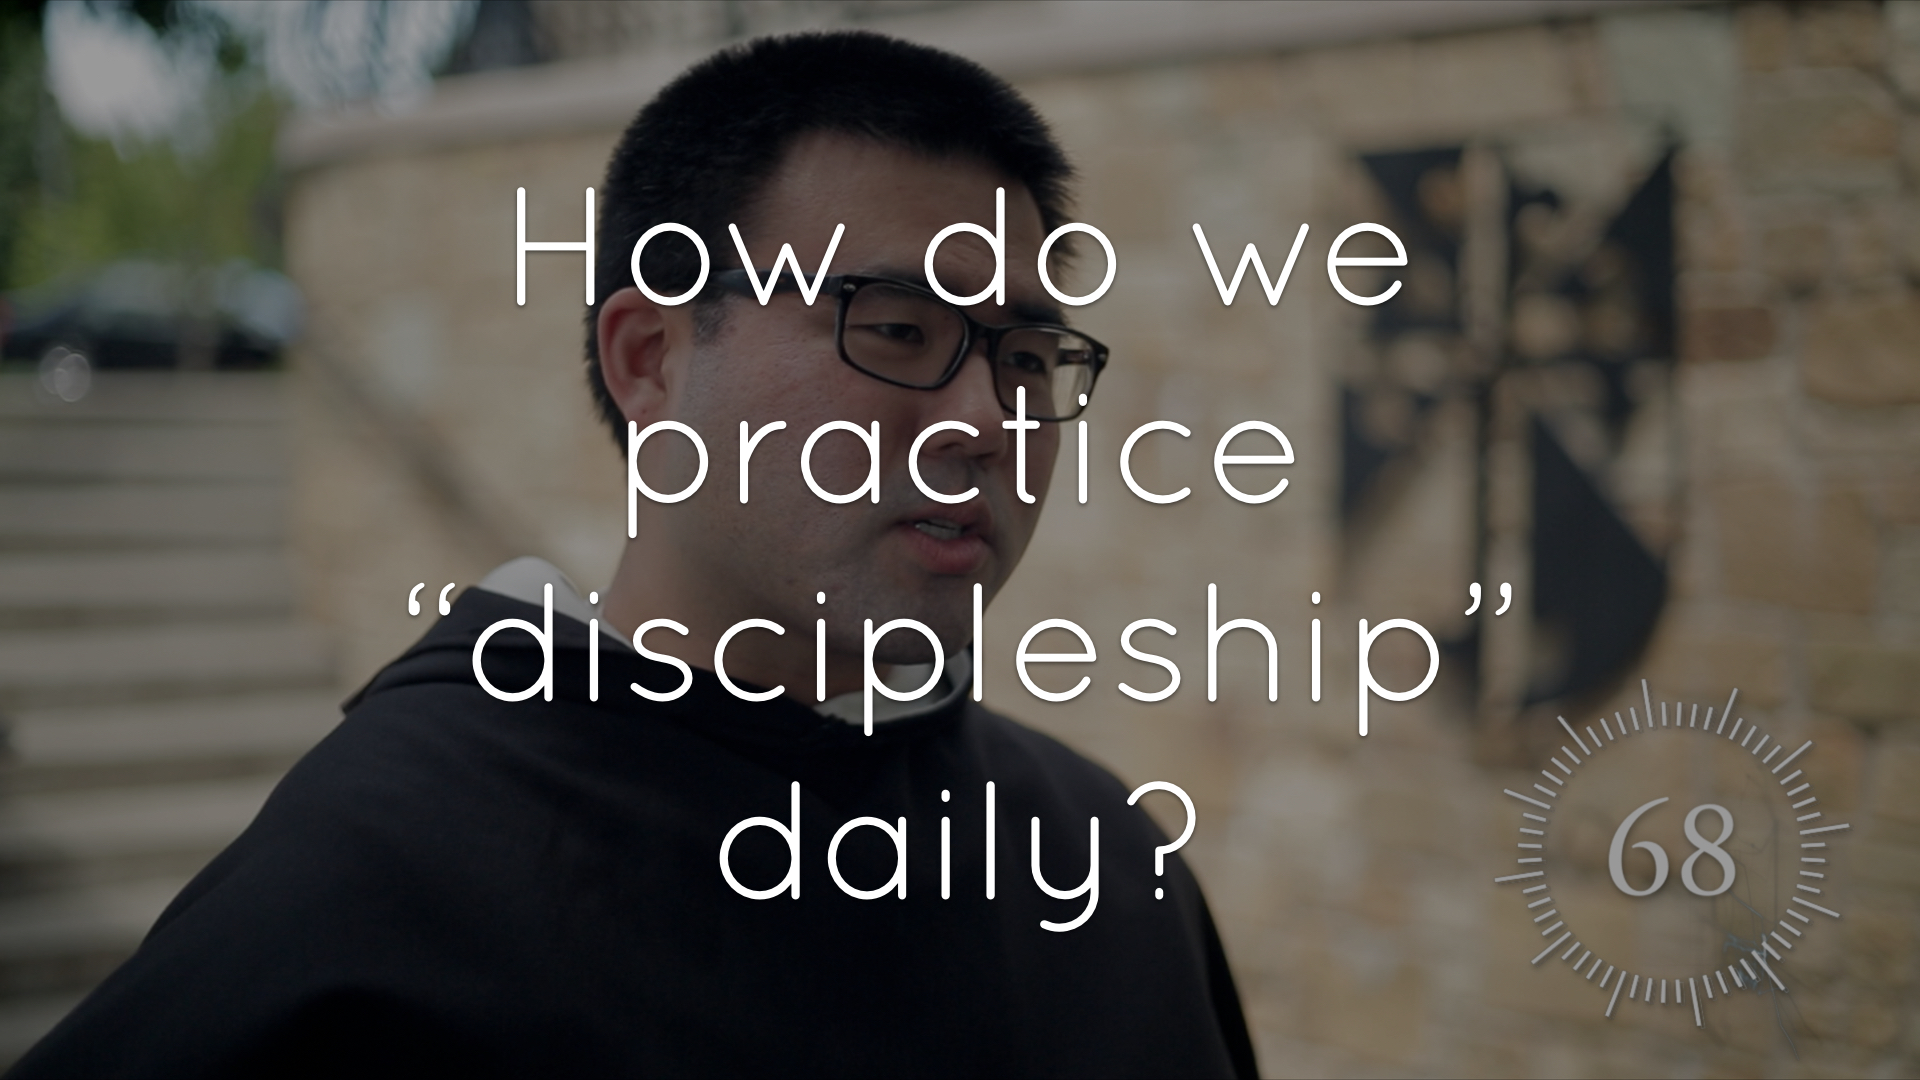 What is discipleship and how do we practice it daily?